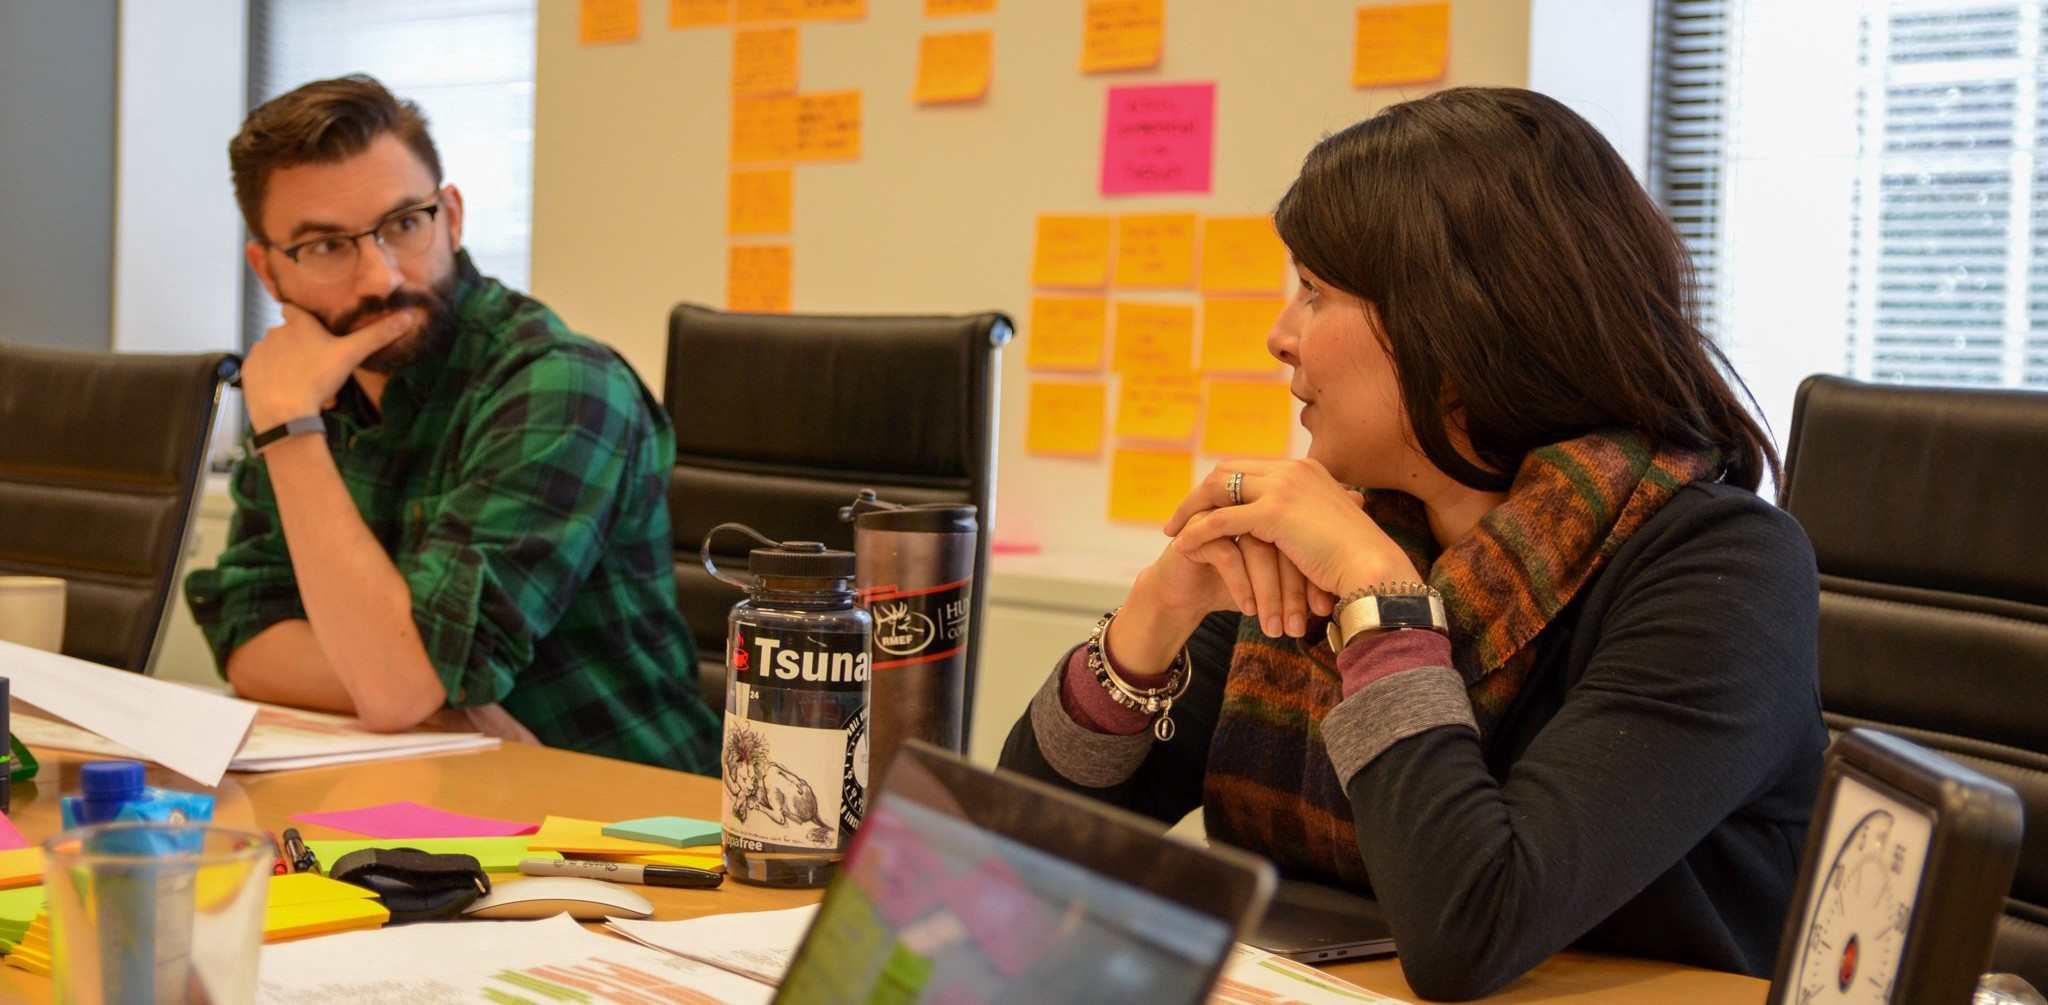 Two researchers consult with each other. The table & walls around them are covered with sticky notes.